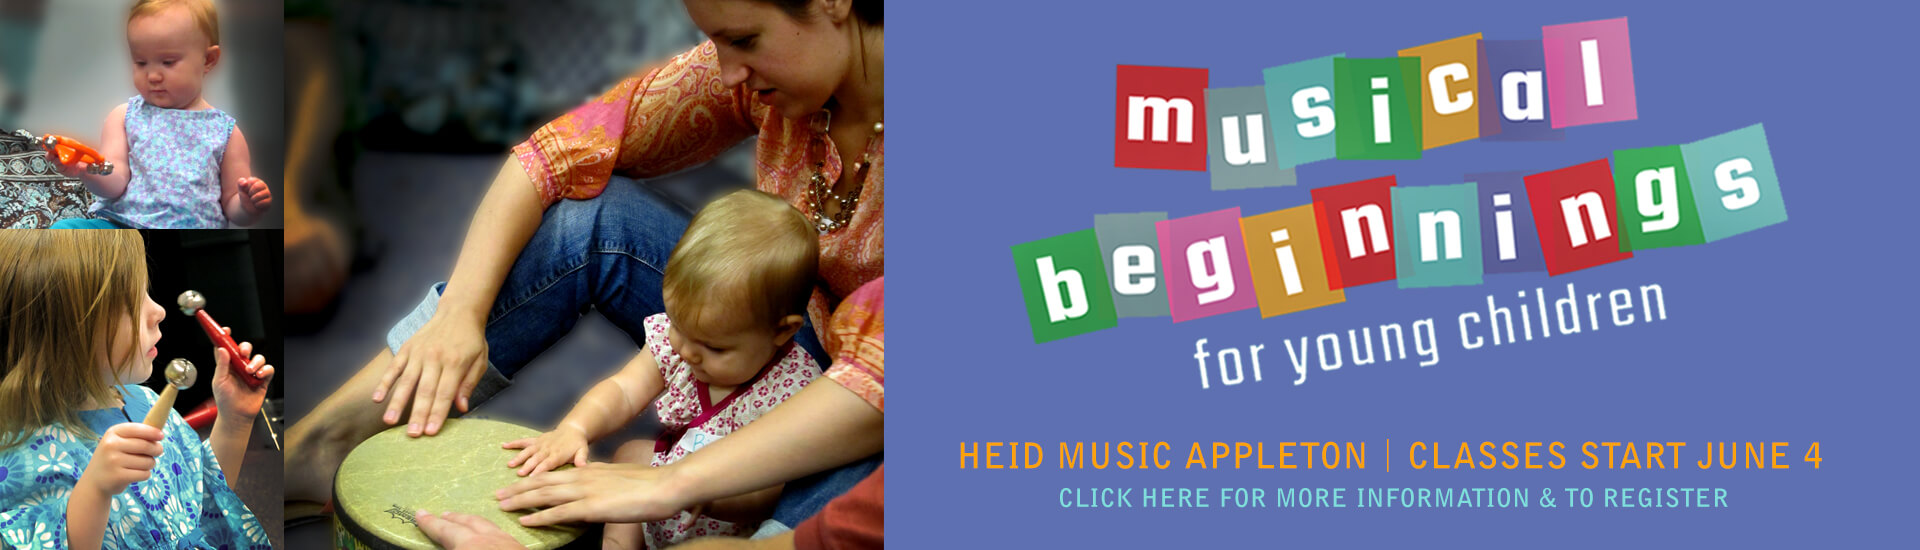 music classes for young children and parent or other adult